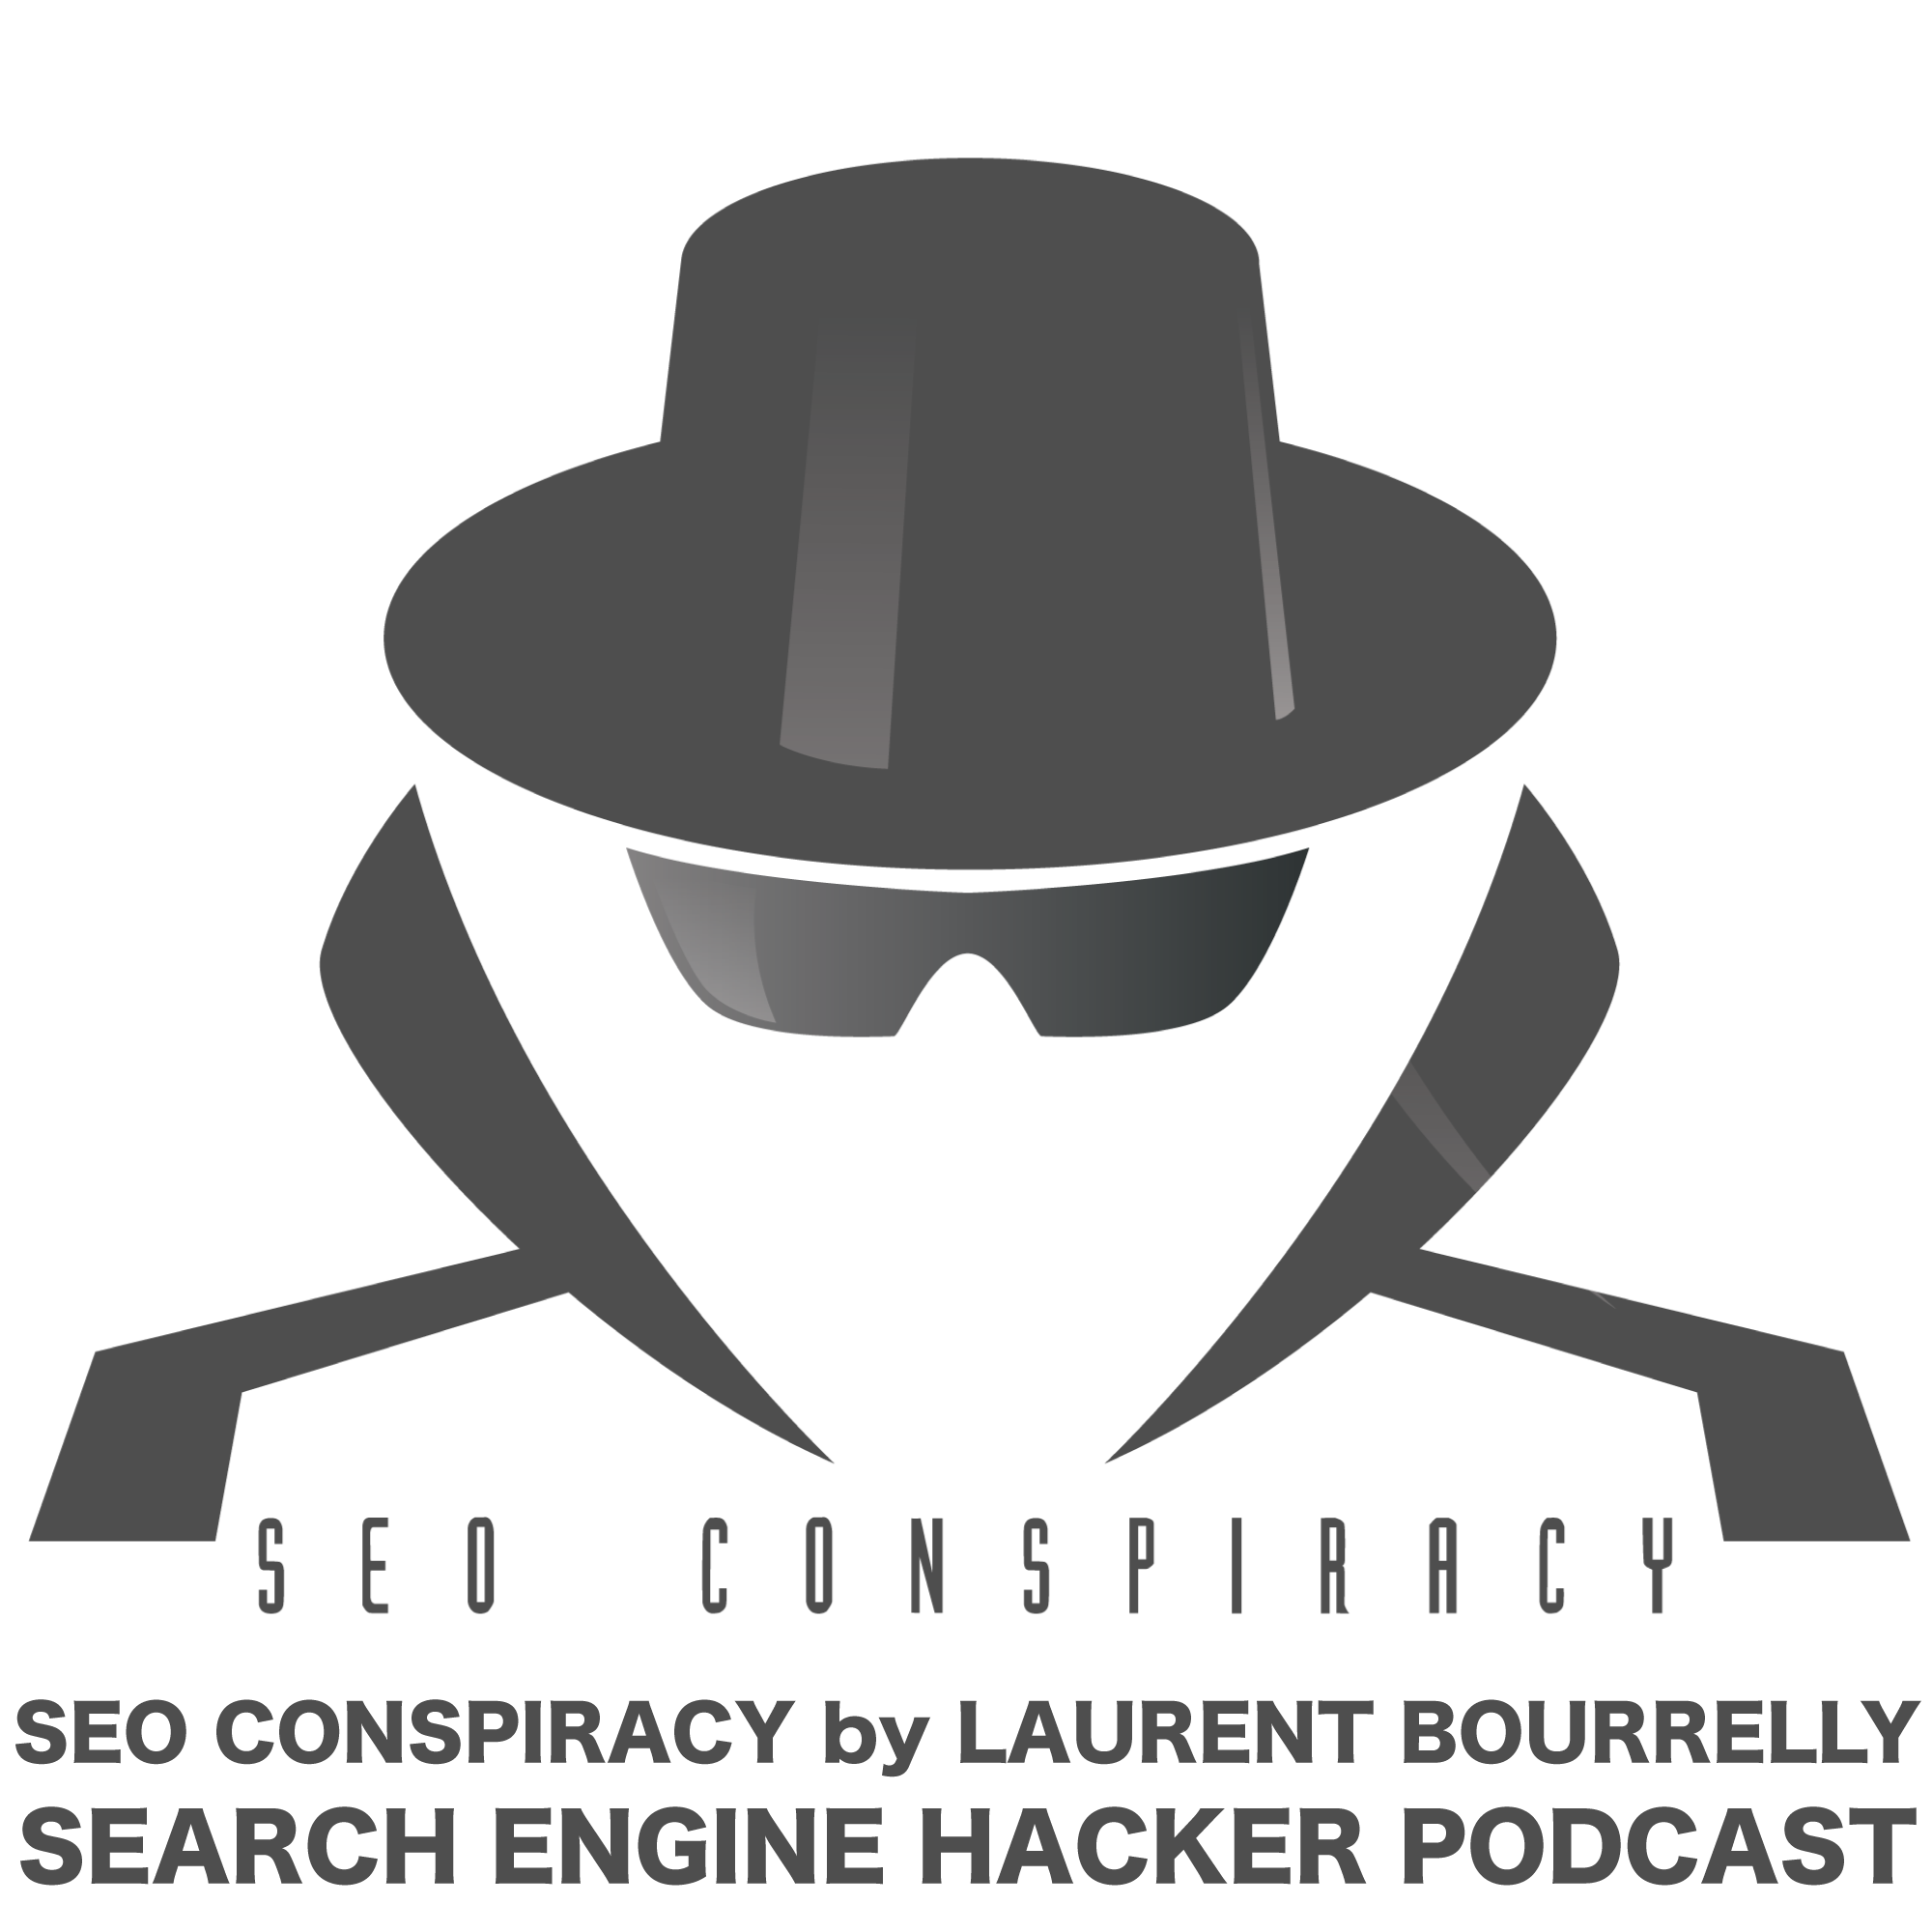 Are .Edu and .Gov Backlinks Better For SEO on Google?